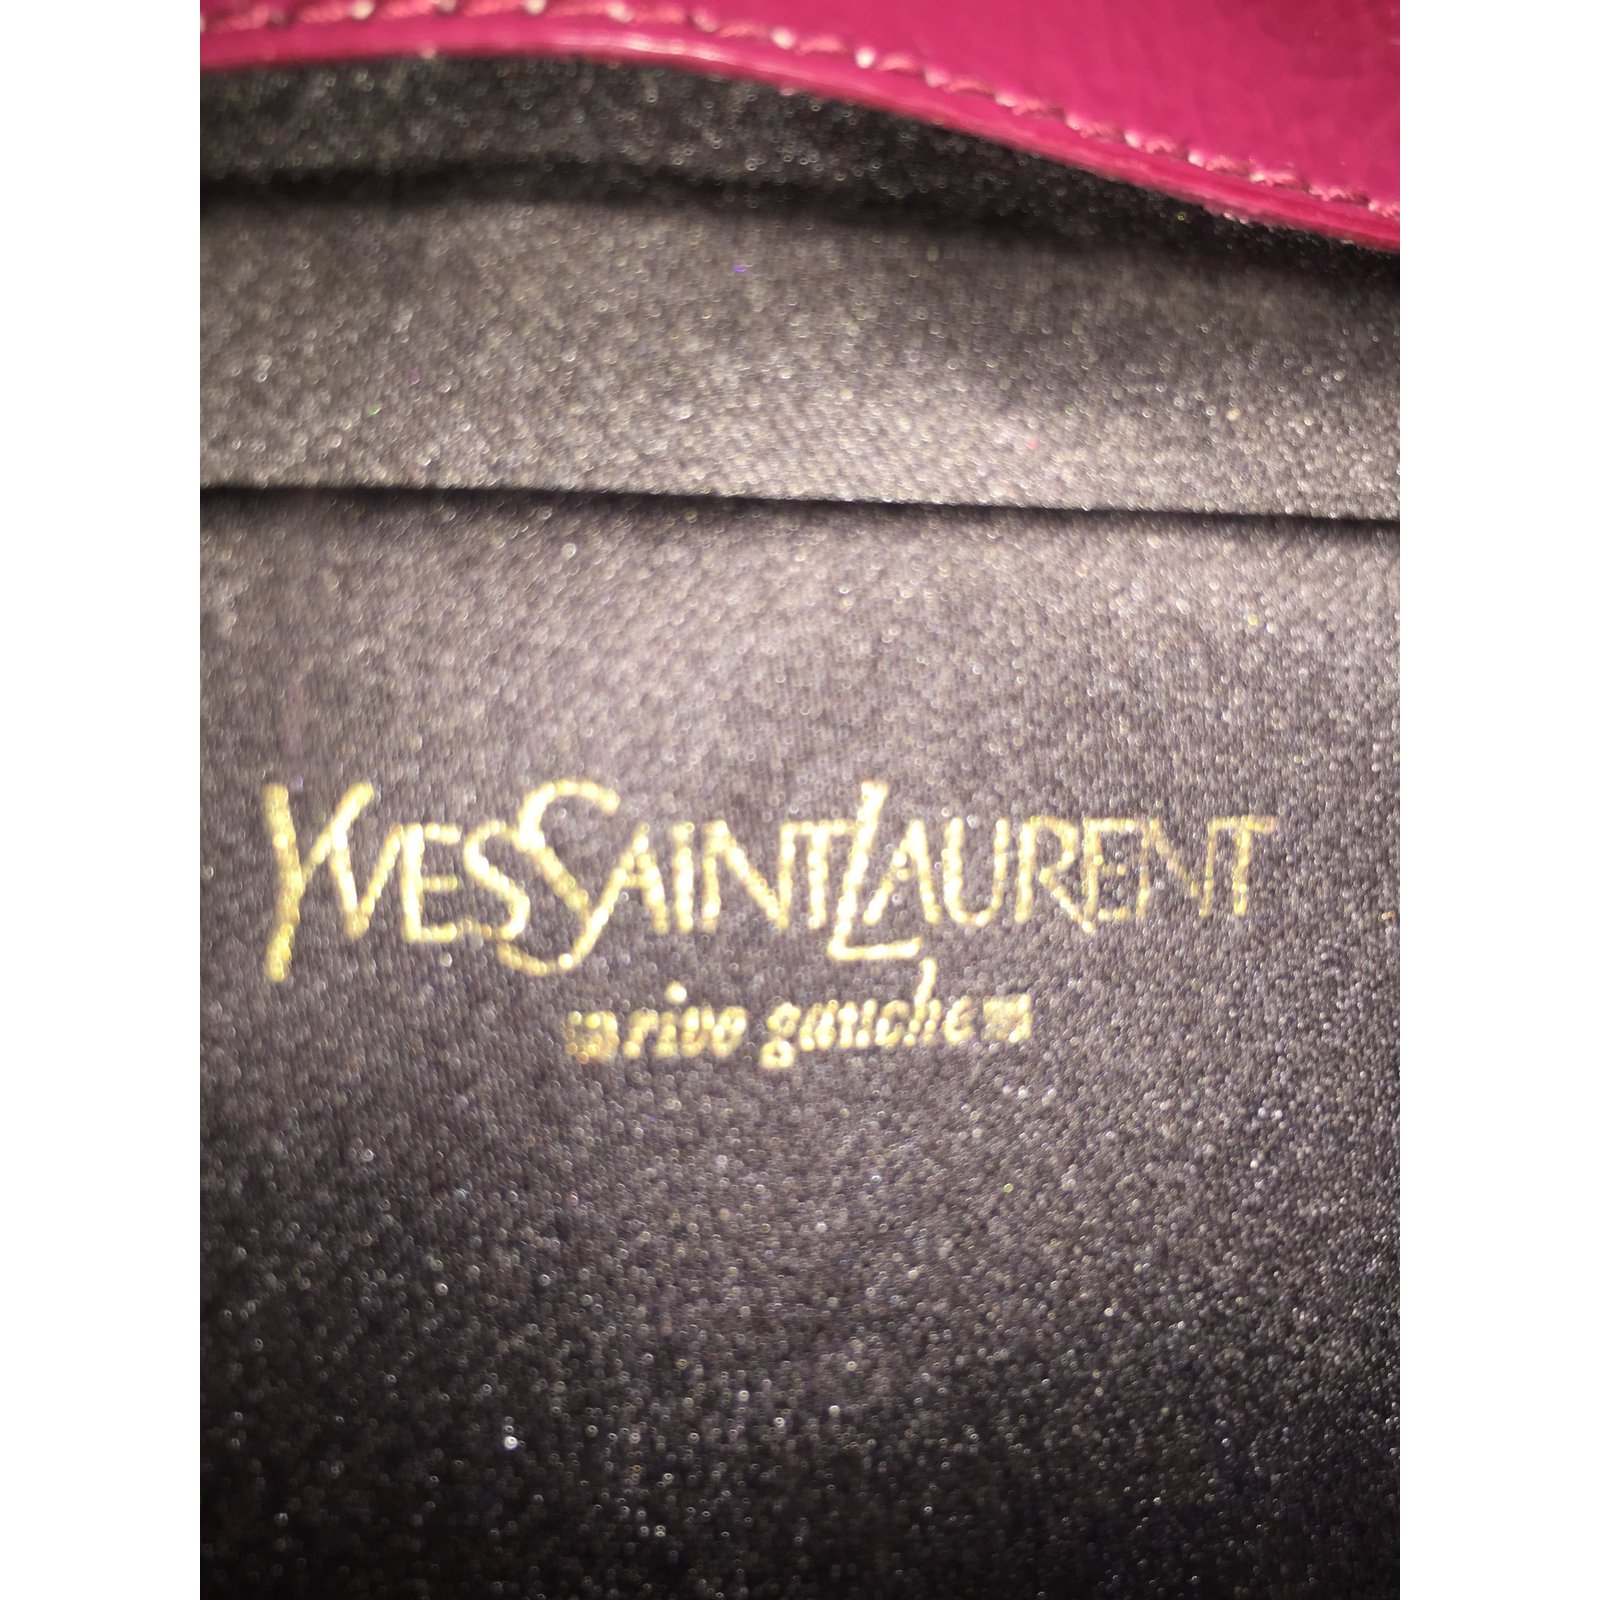 Clutch bags Yves Saint Laurent Clutch bags Patent leather Pink ref ...